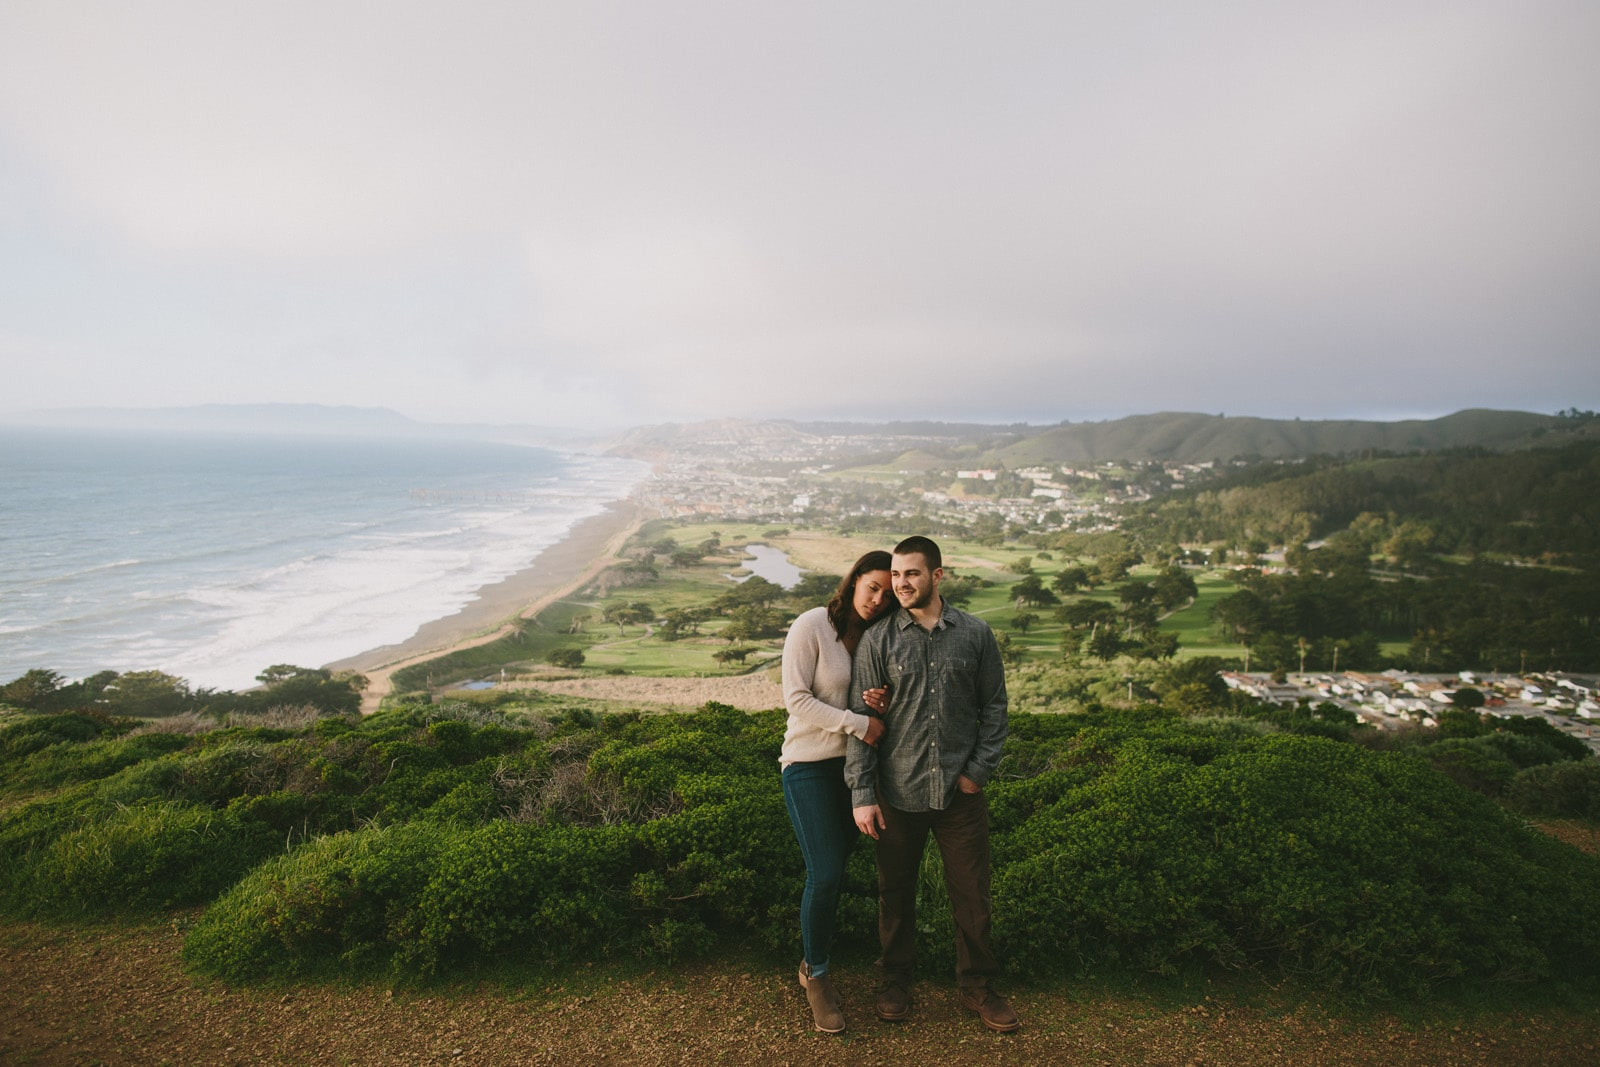 San_Francisco_Engagment_Session_Beach_Engagment_Session_011